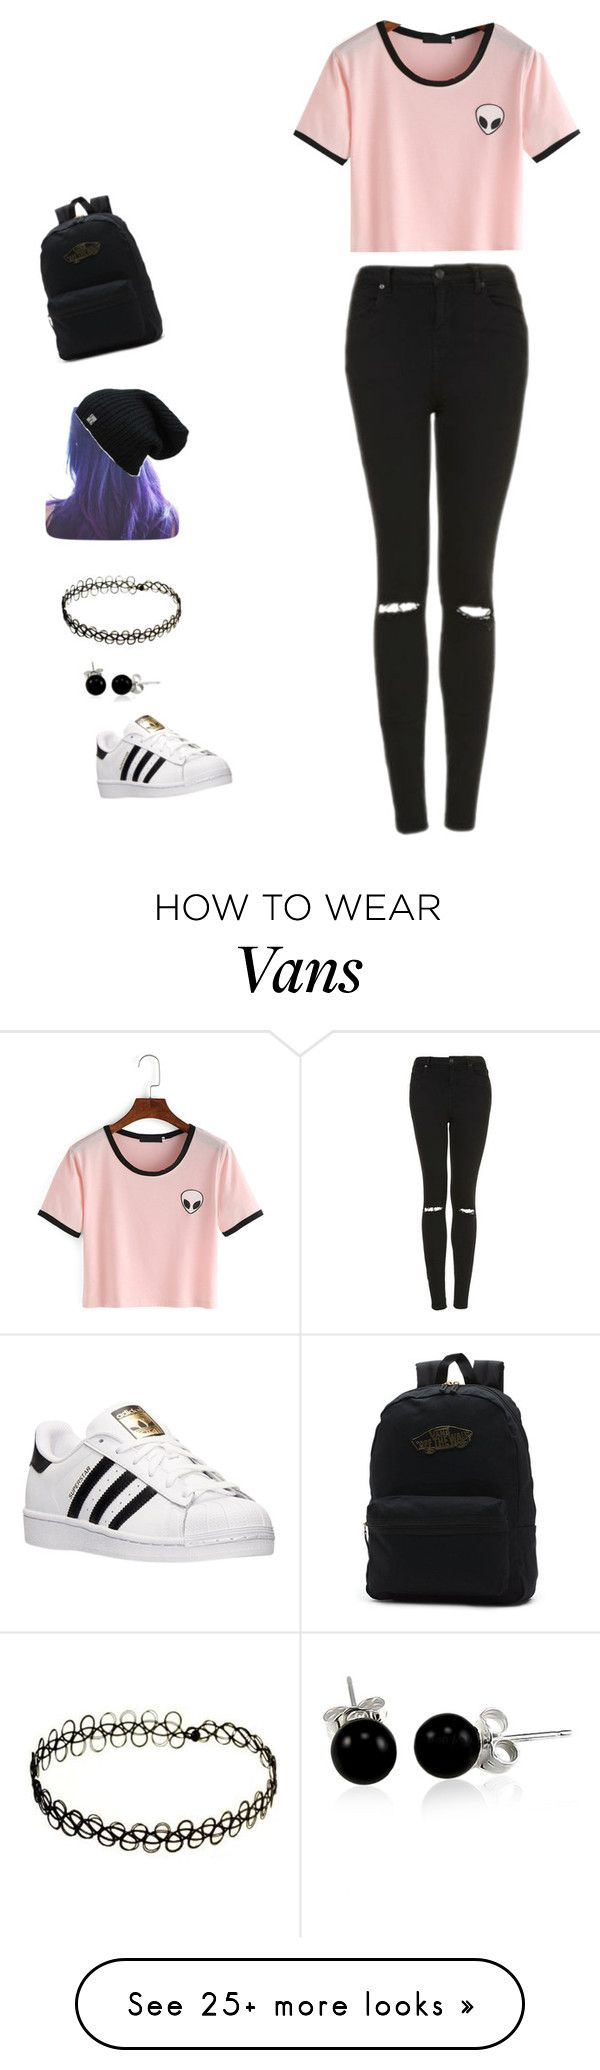 """GRuNGE"" by cassidynh88 on Polyvore featuring Topshop, adidas, Vans and Bling Jewelry"